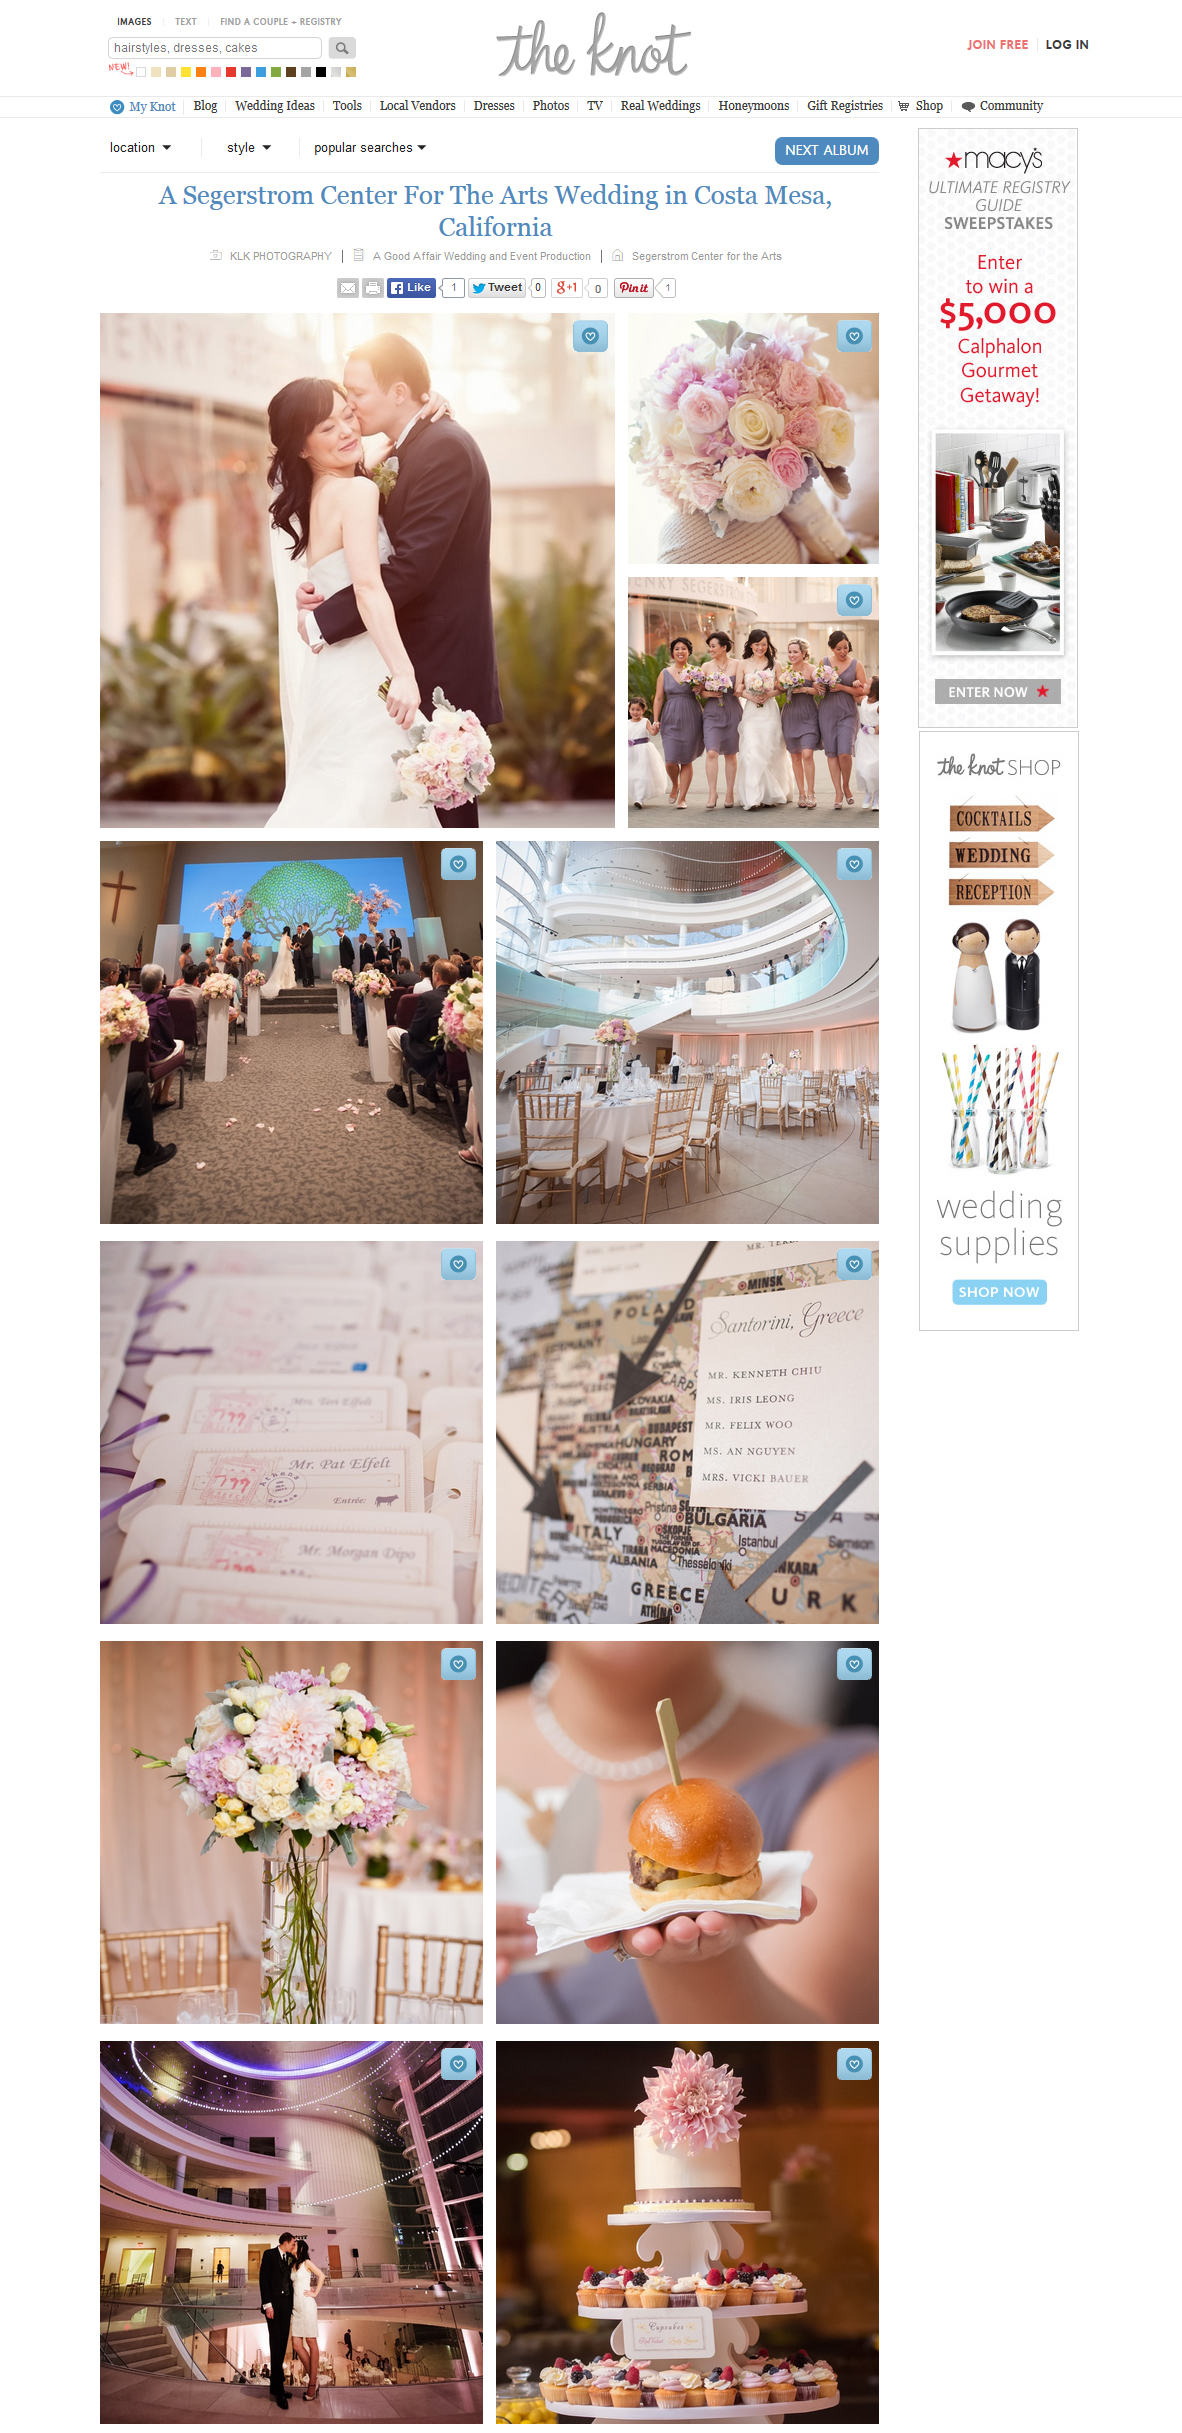 the knot blog segerstrom center wedding